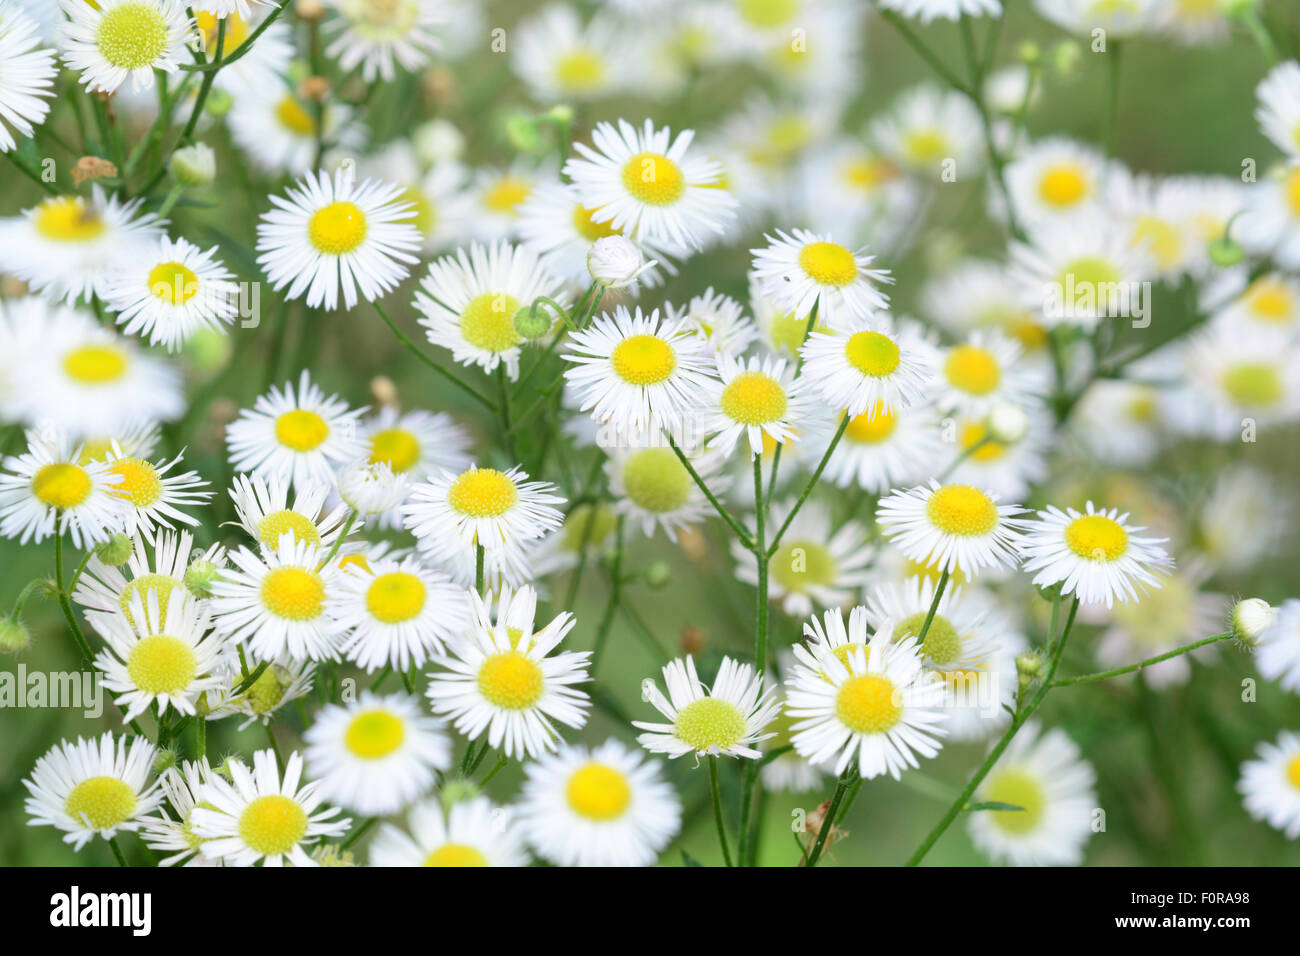 Small White Daisy Flowers Stock Photos Small White Daisy Flowers